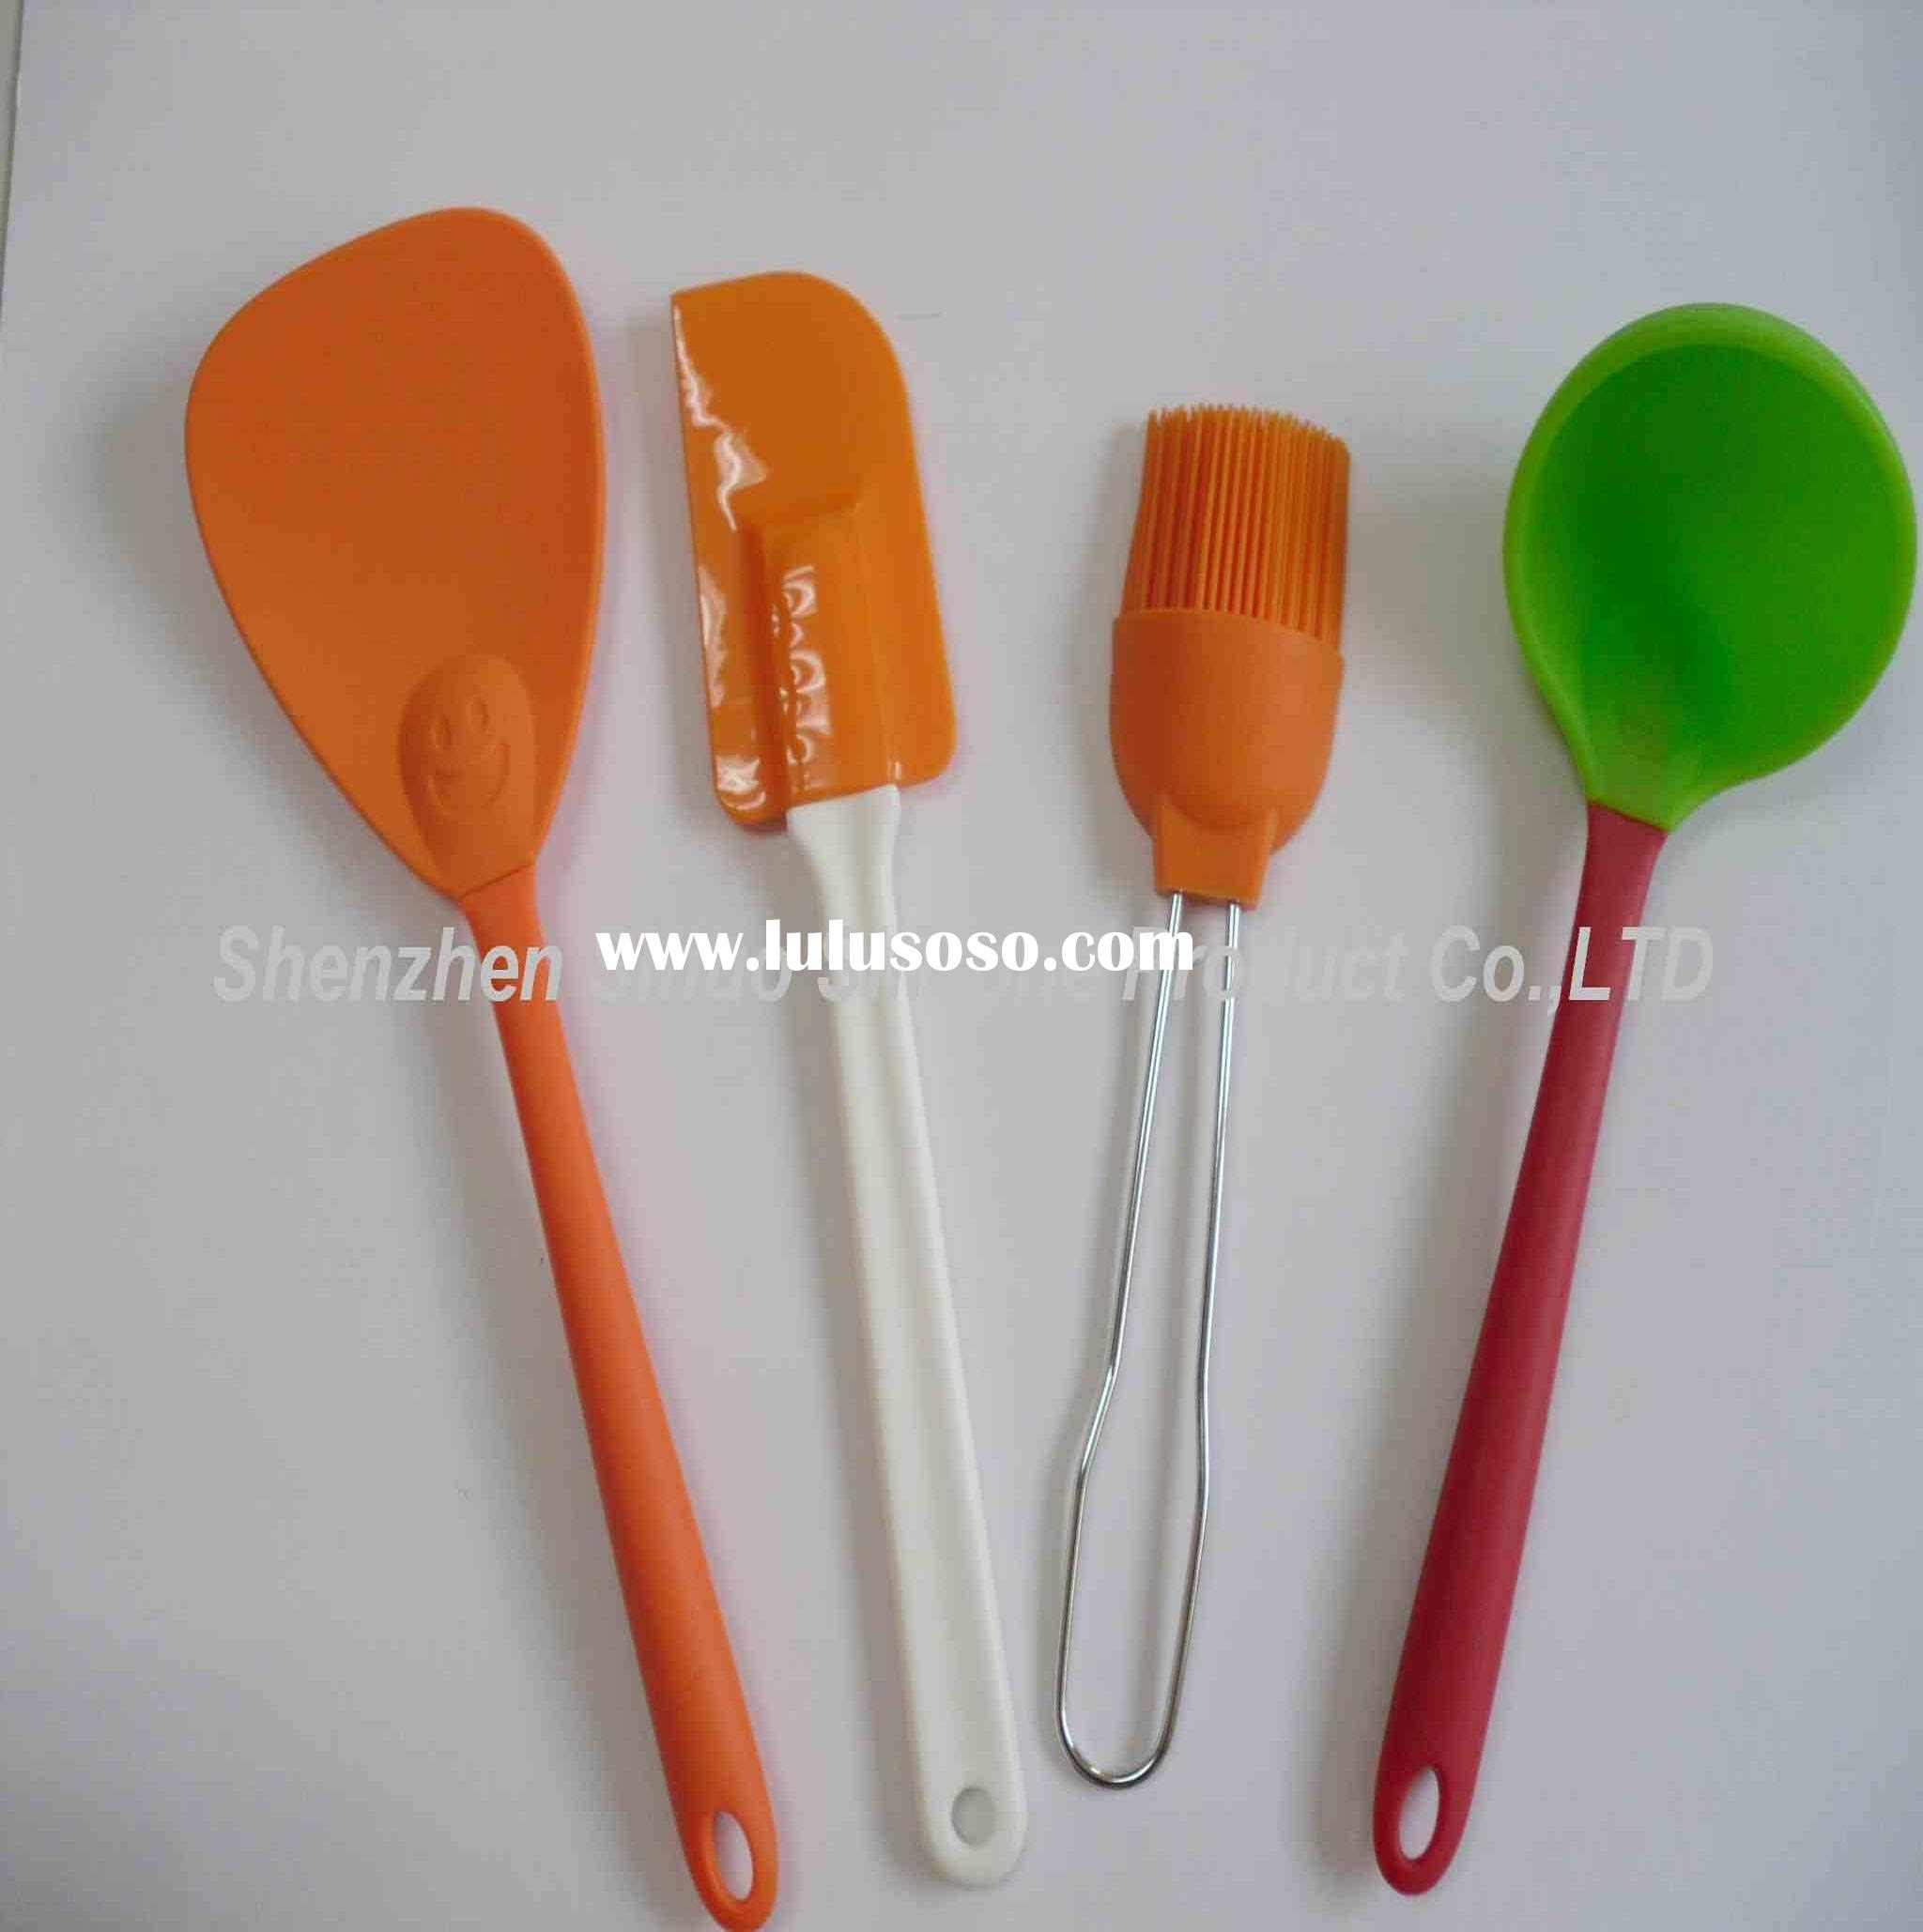 Kitchen equipment and their uses - Kitchen Utensils And Uses Baking Utensils And Their Functions Baking Utensils And Their